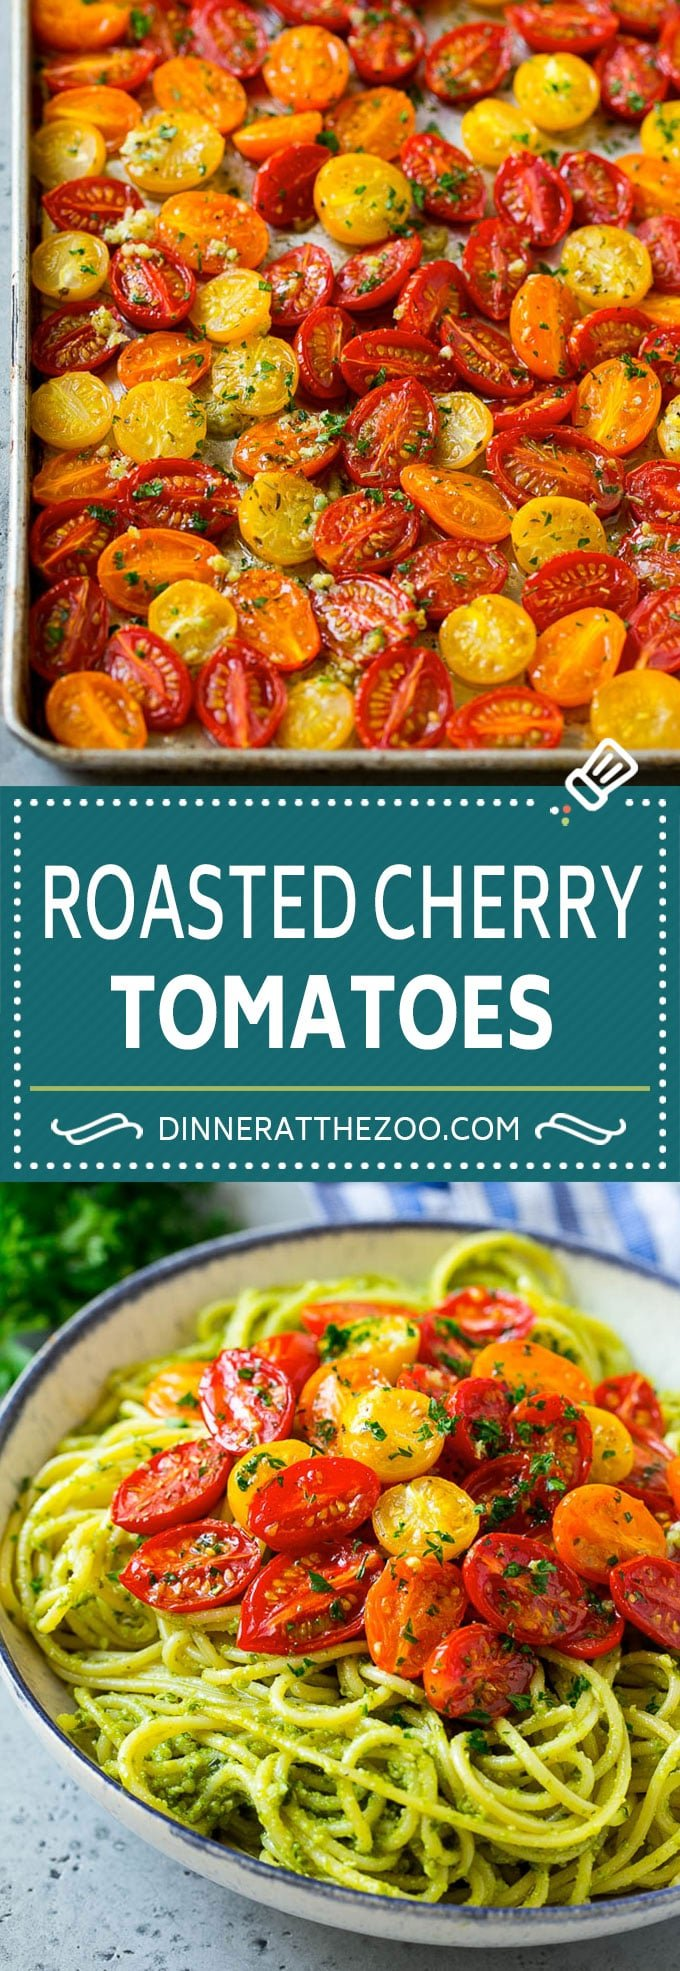 Roasted Cherry Tomatoes Recipe | Roasted Tomatoes #tomatoes #sidedish #glutenfree #cleaneating #healthy #dinner #dinneratthezoo